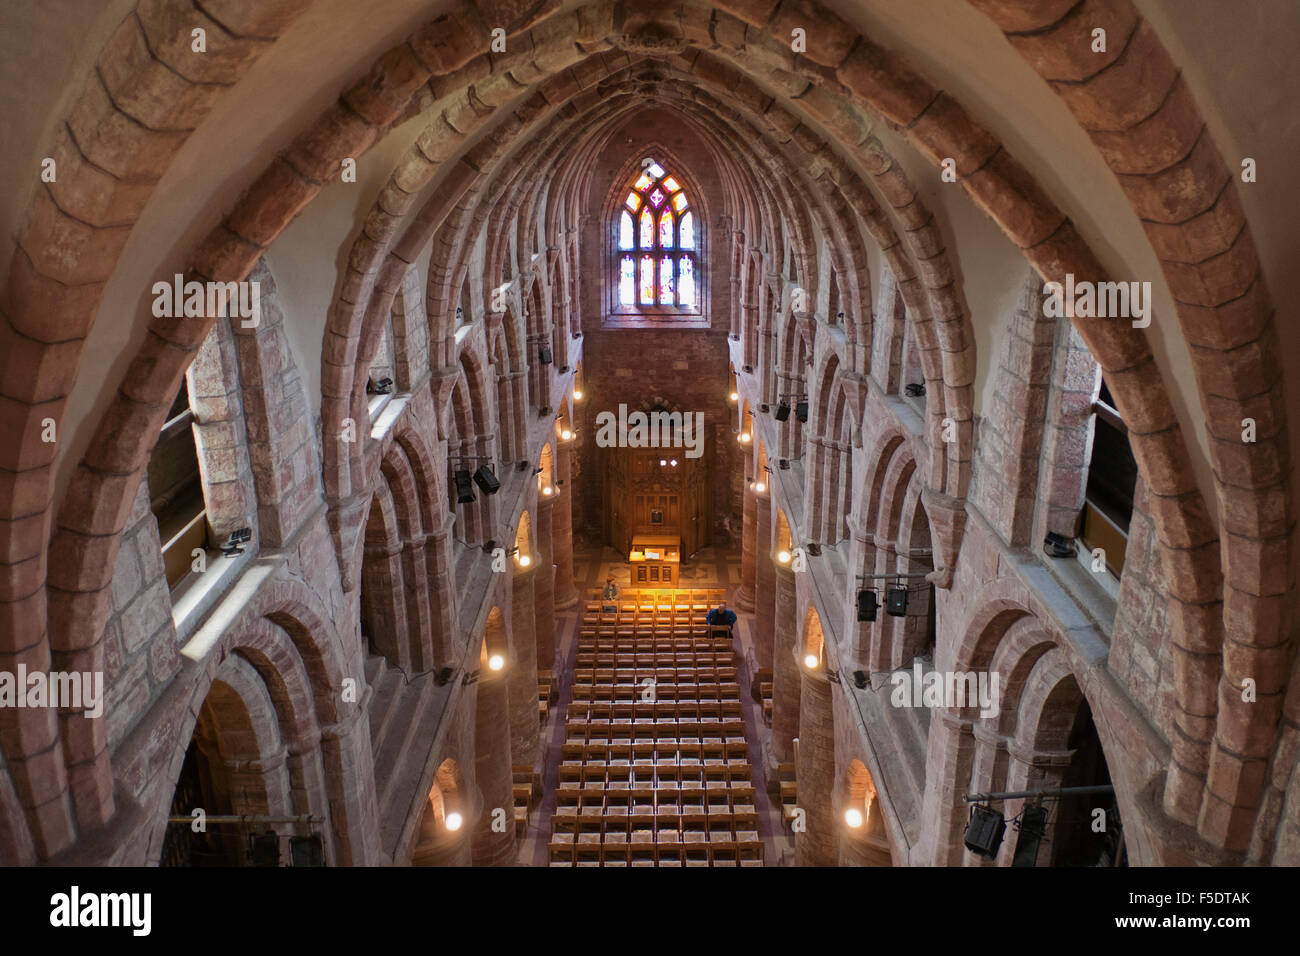 The Nave looking west, St Magnus Cathedral, Kirkwall, Orkney - Stock Image